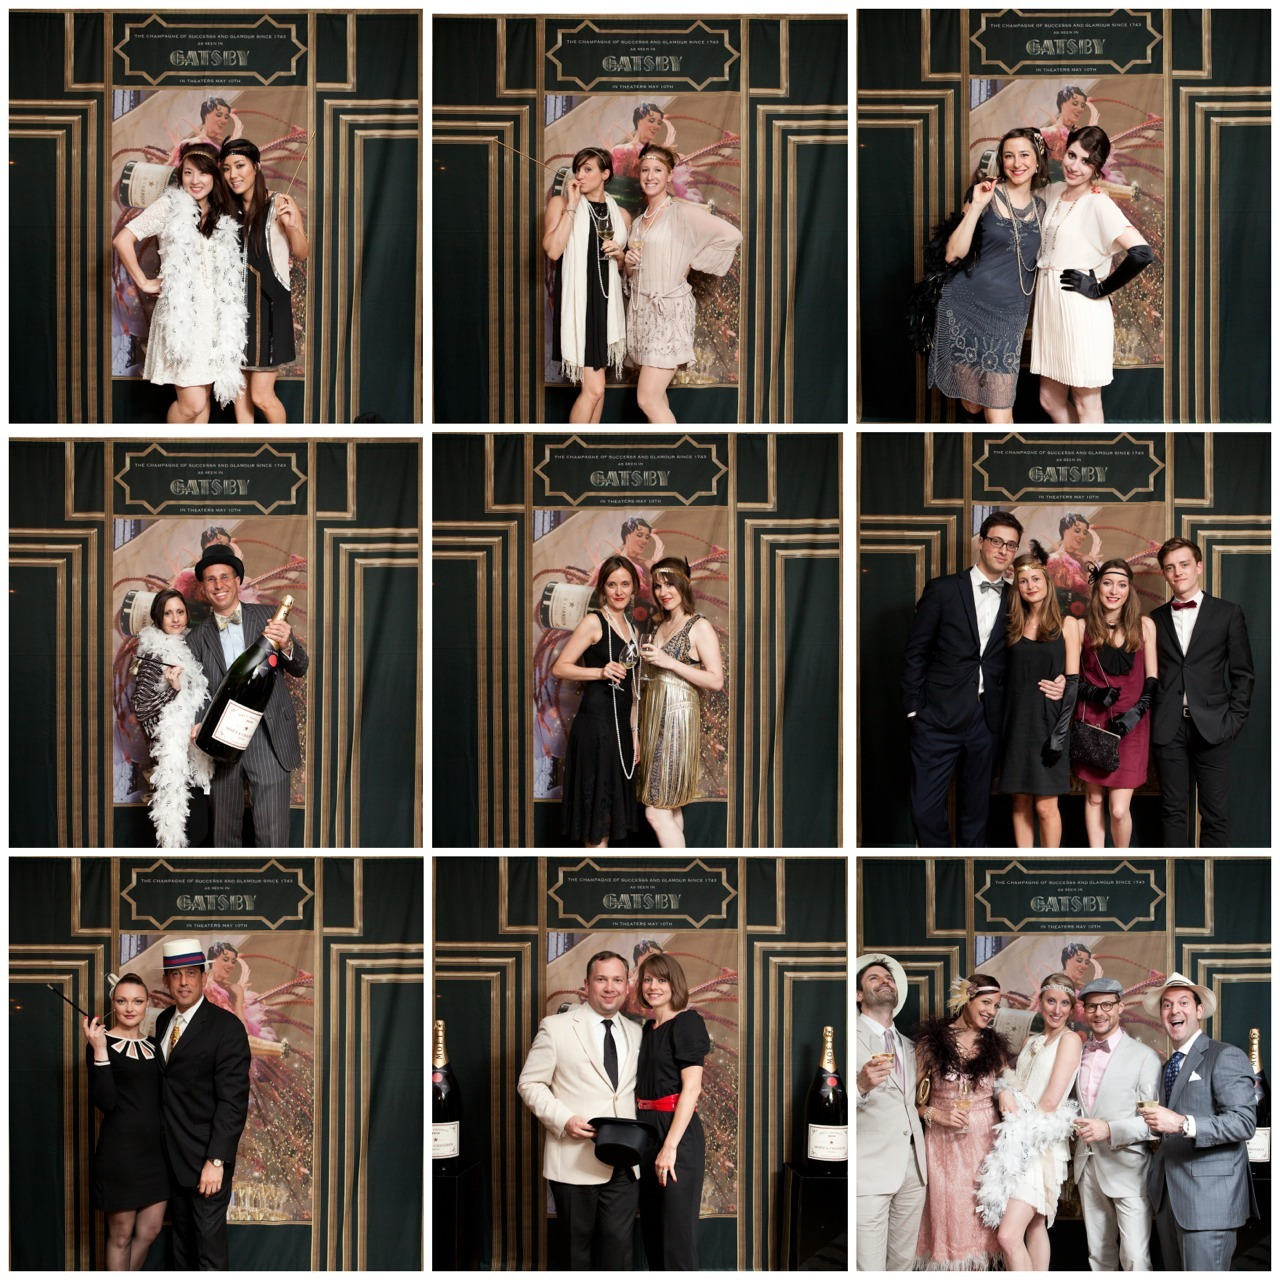 Great Gatsby photo booth fun